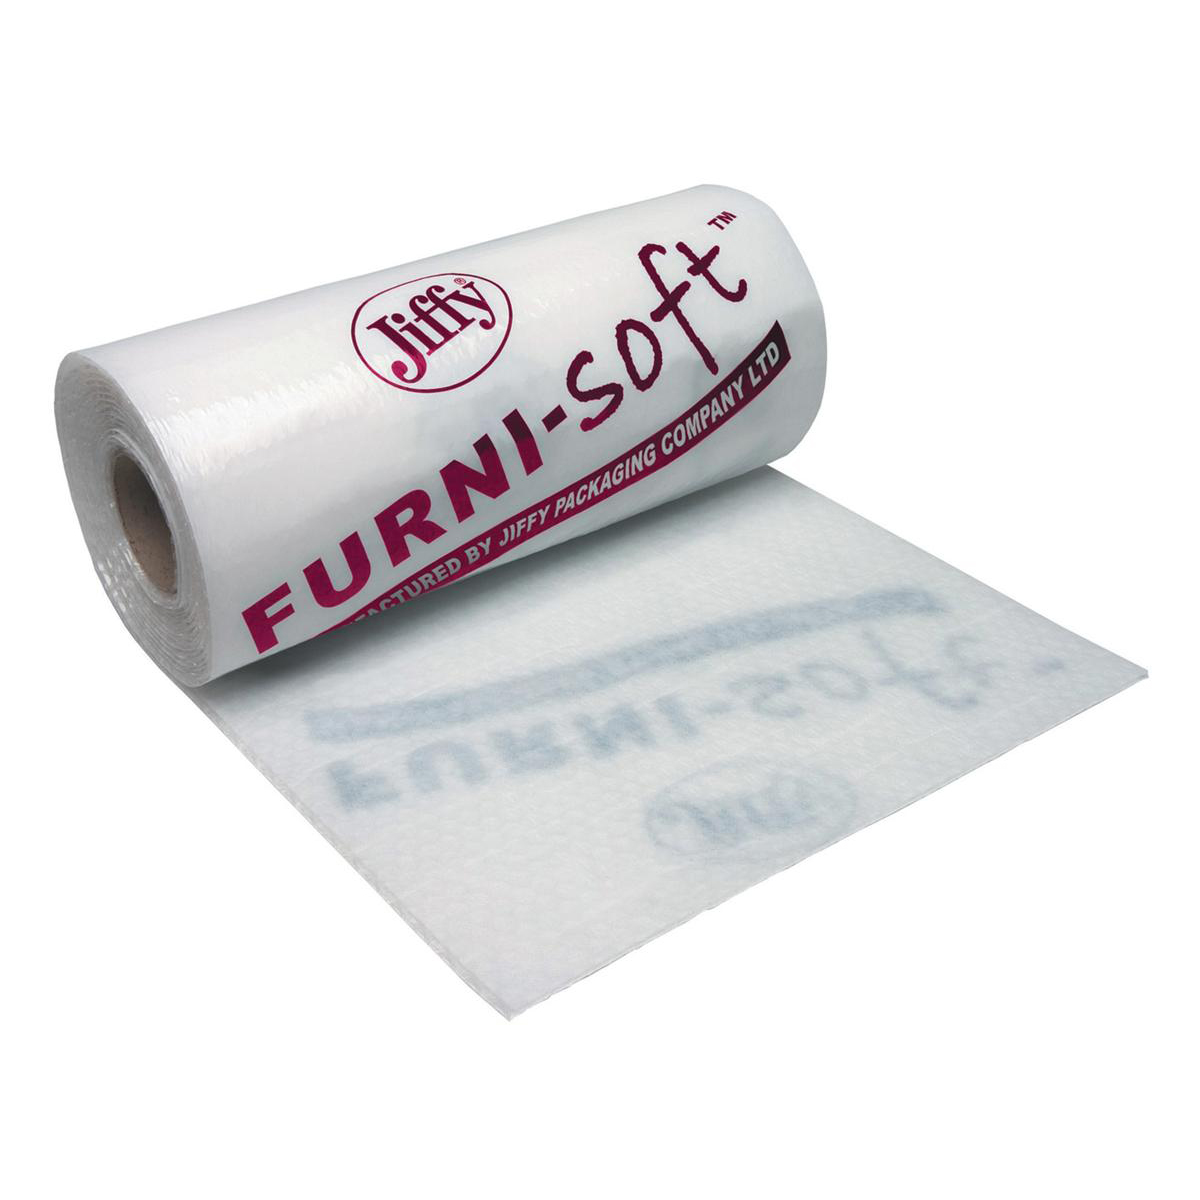 Work surface protection covers Jiffy Furni-soft Roll Soft Low Density Polyethylene Furniture Protection 1200mmx50m Clear Ref BLAM39561